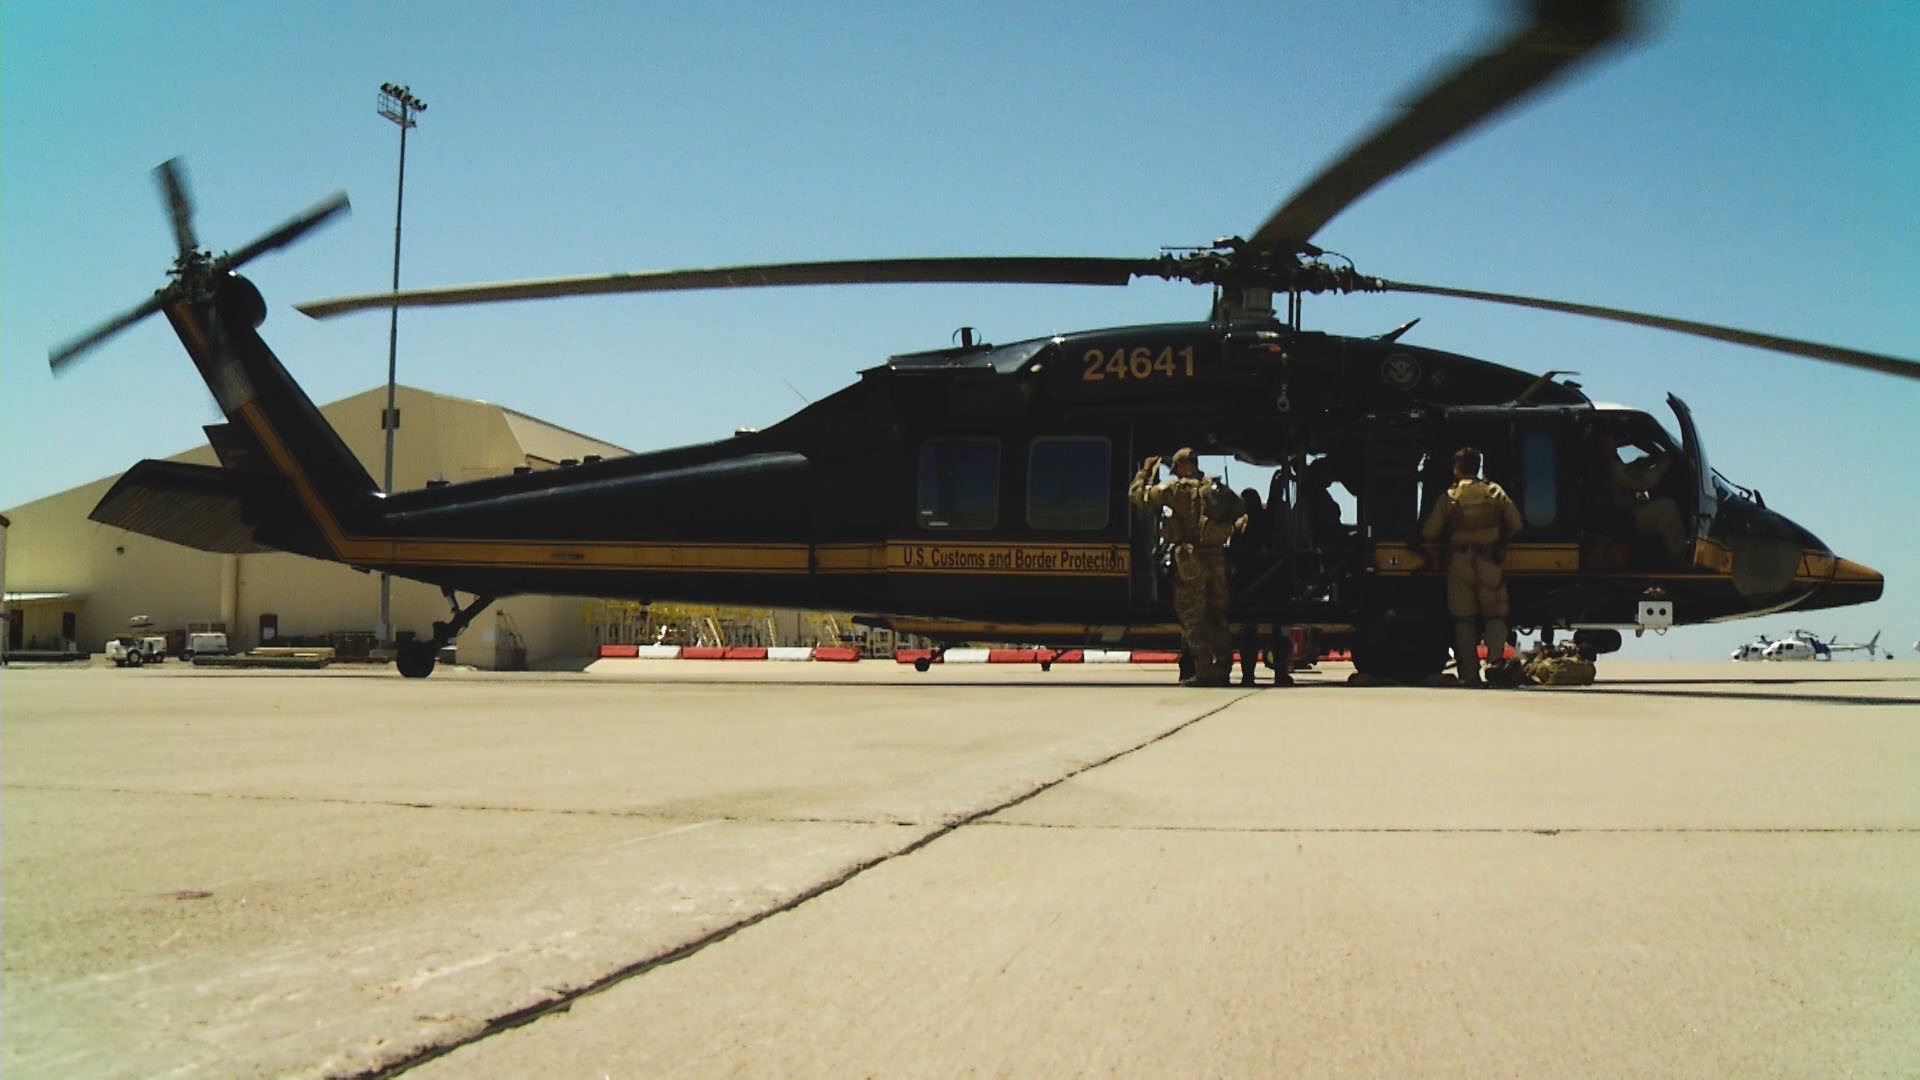 A Black Hawk helicopter used by Border Patrol sits on the tarmac at Davis-Monthan Air Force Base.